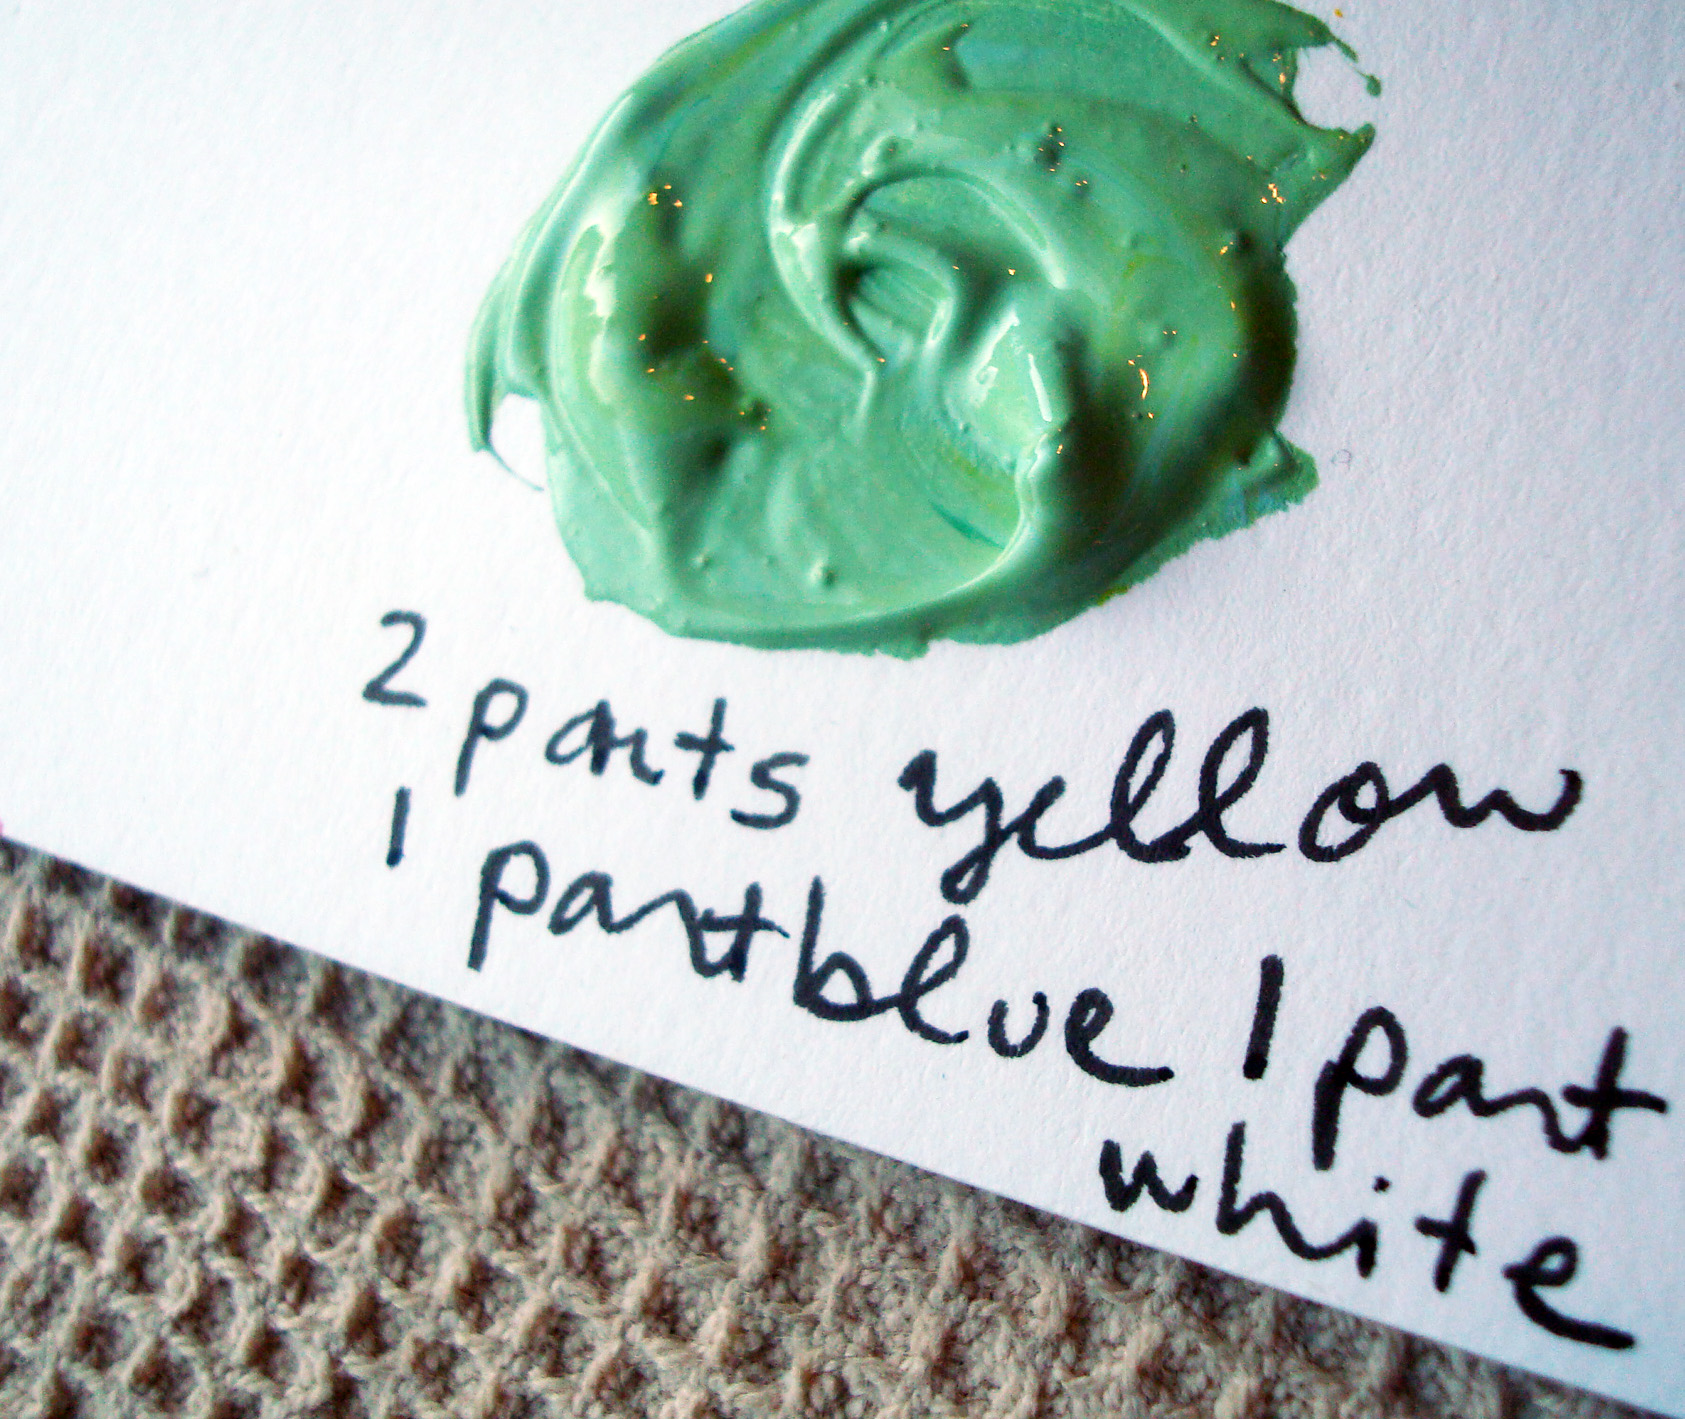 Green with yellow and white